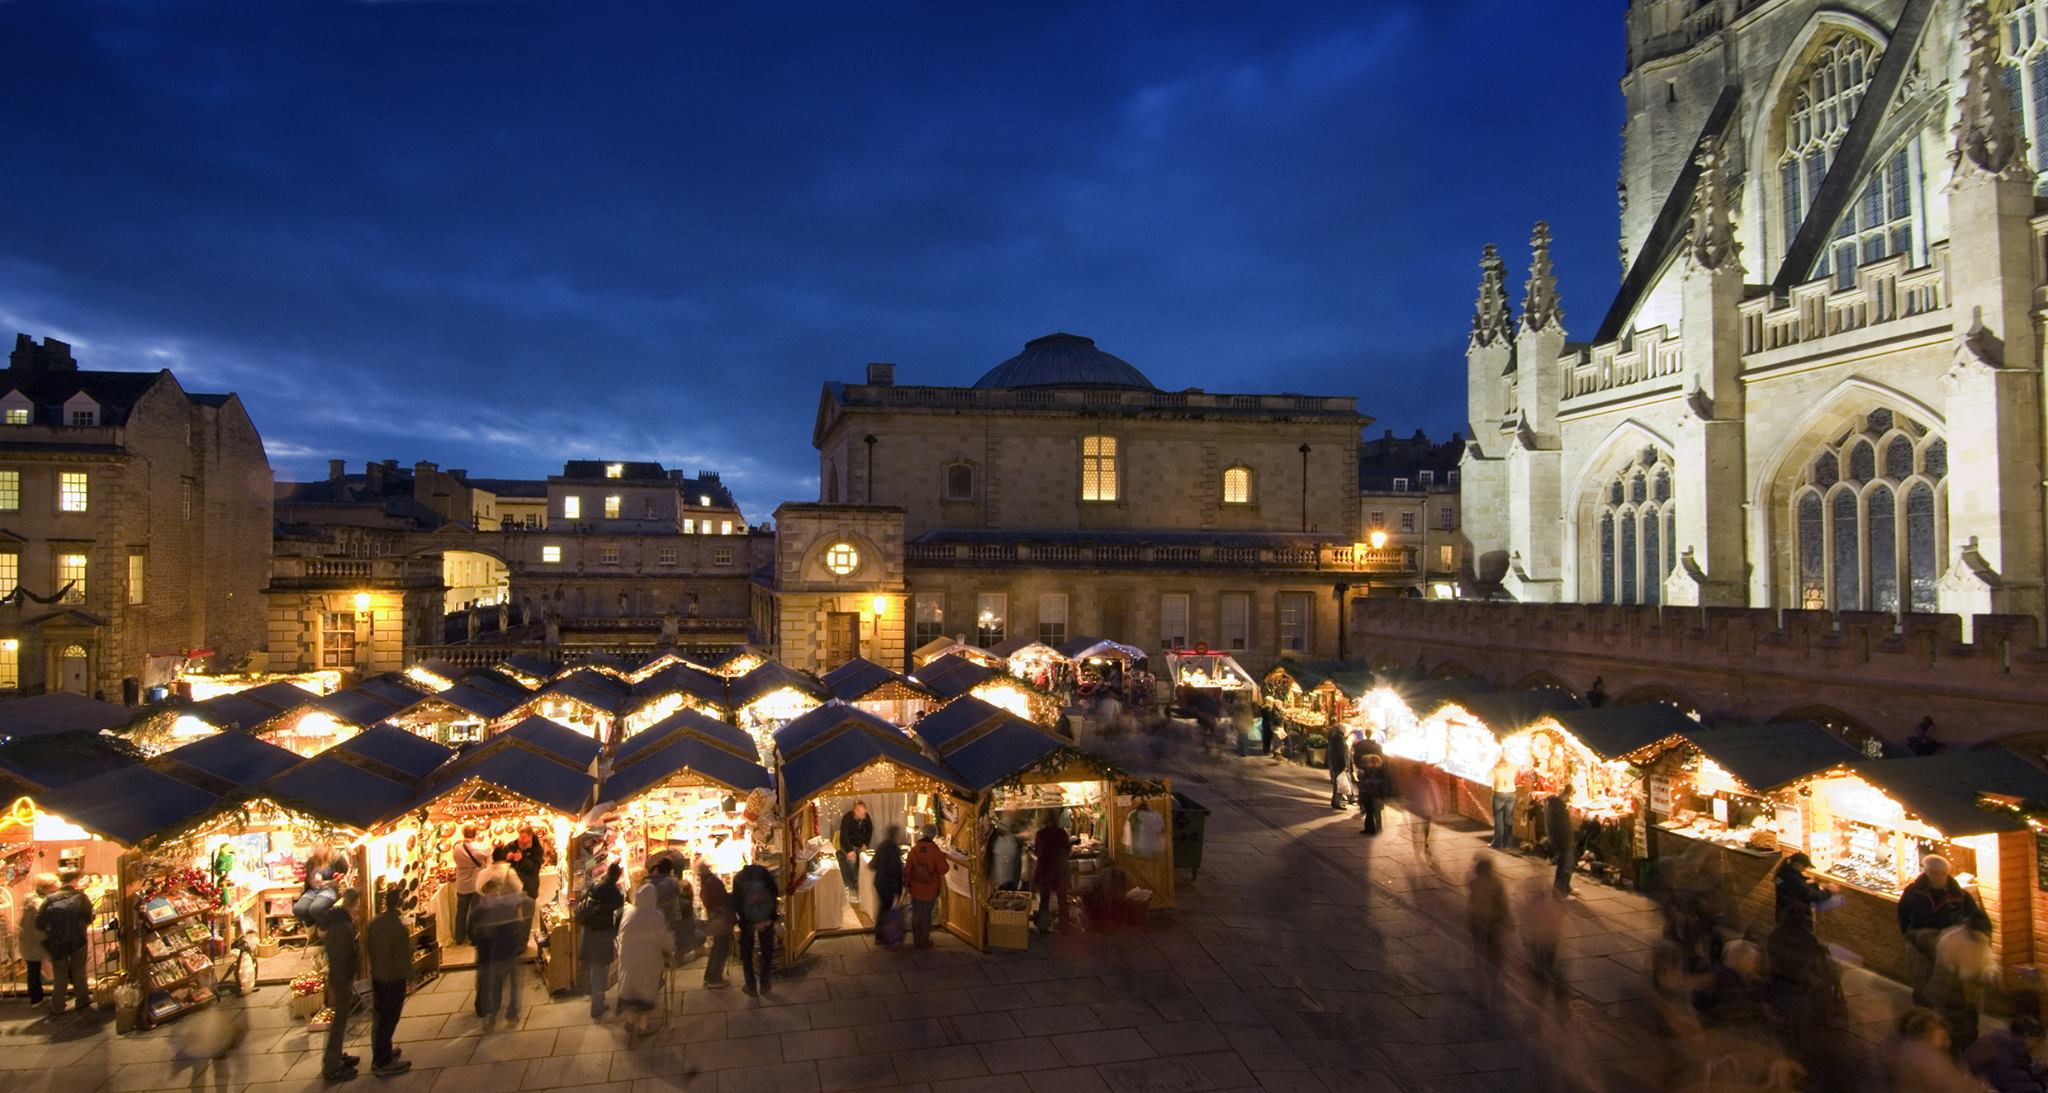 Christmas in Bath would not be complete without the Bath Christmas market